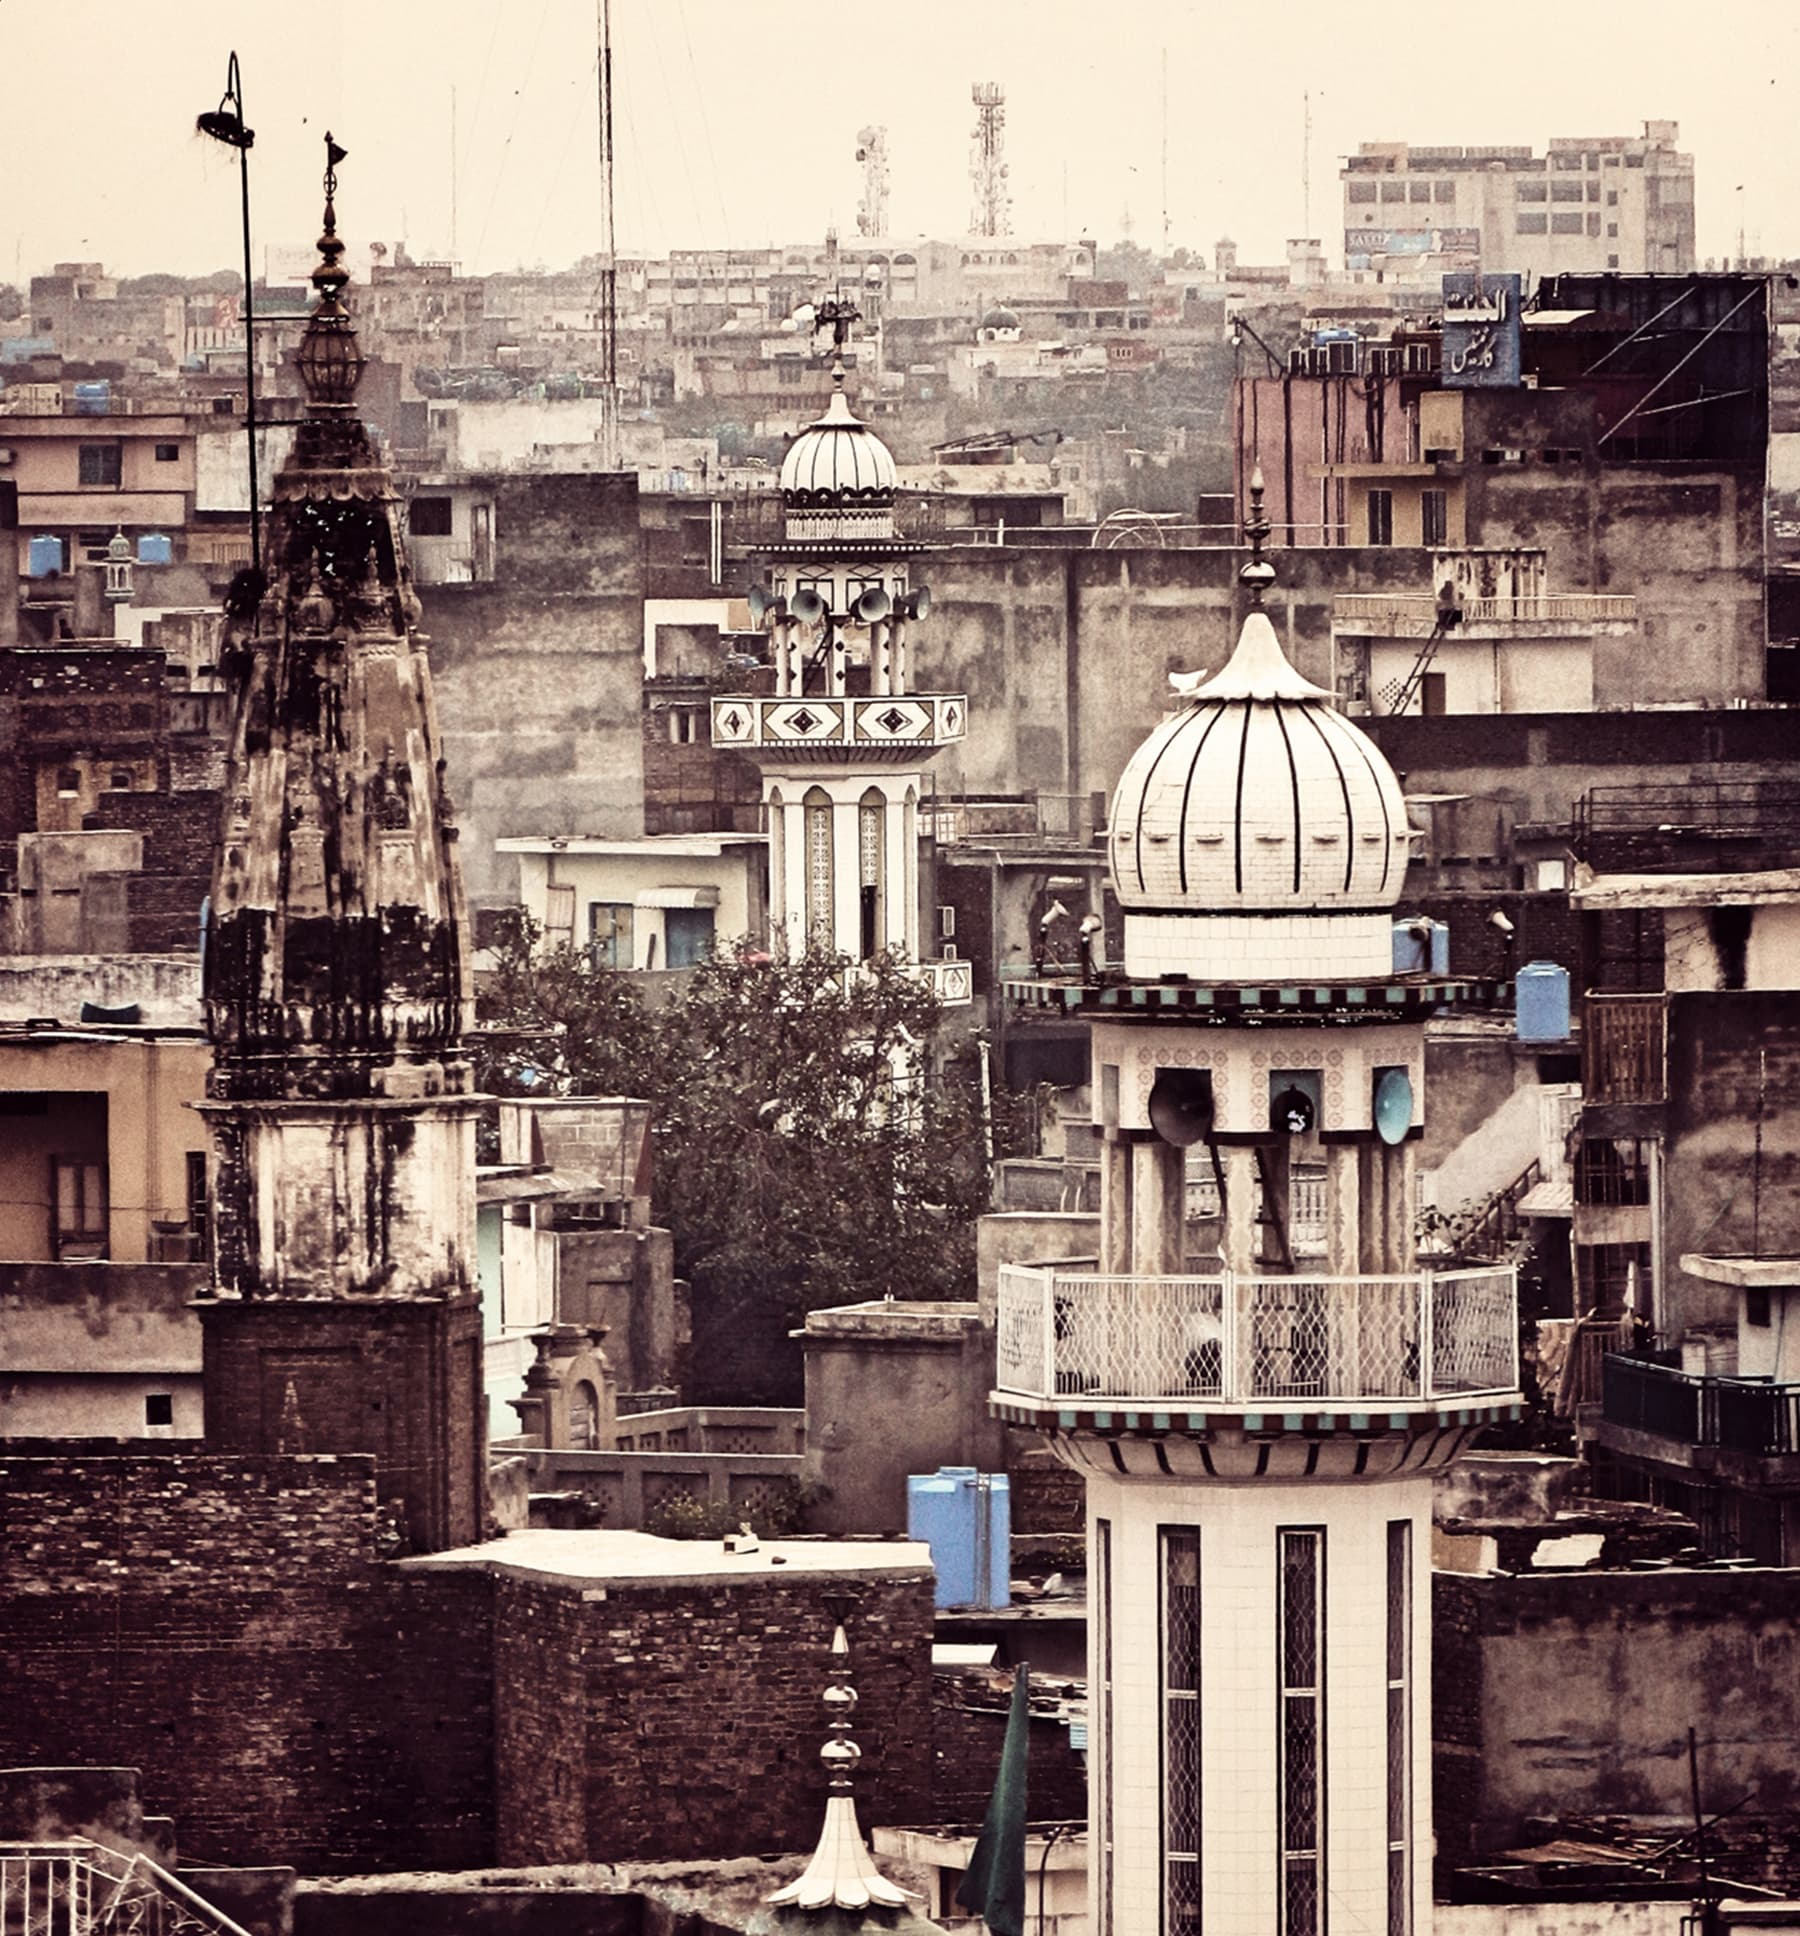 Mandir spire juxtaposed with Mosque Minar in the Bhabra bazaar neighbourhood of Old Rawalpindi.—Muhammad Bin Naveed